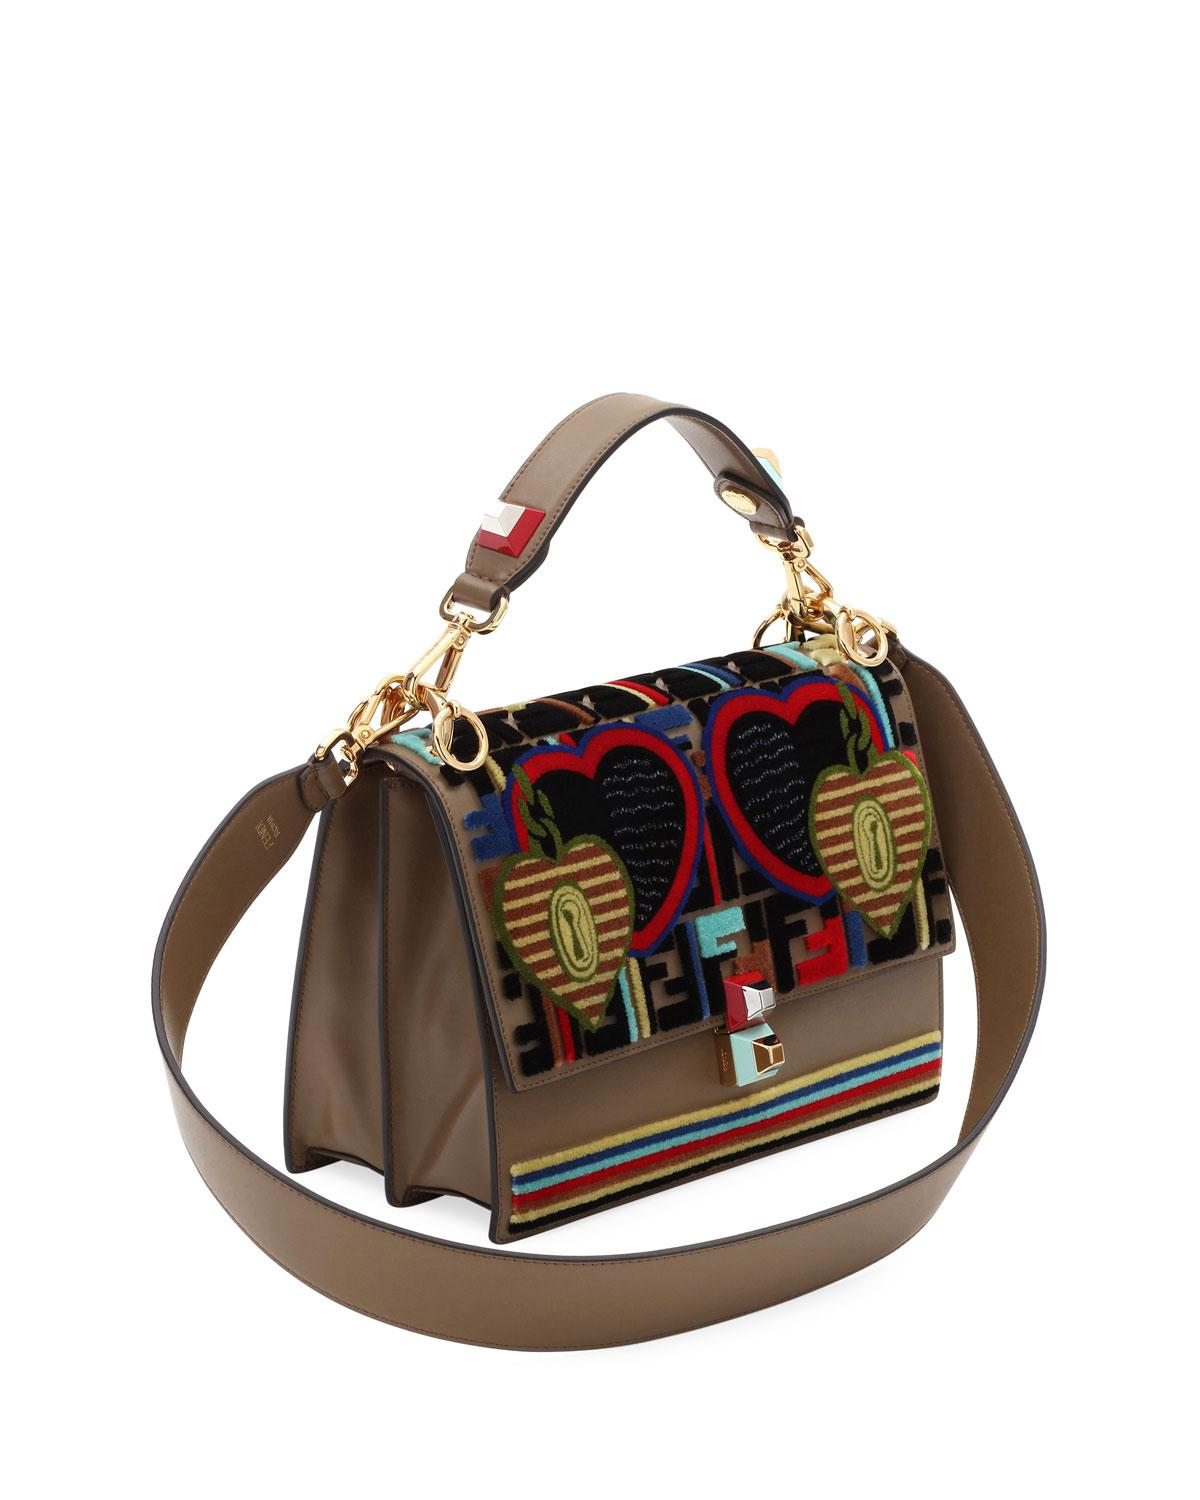 63287ab6343a Fendi Embroidery Tappetino Kan I Shoulder Bag in Brown - Lyst